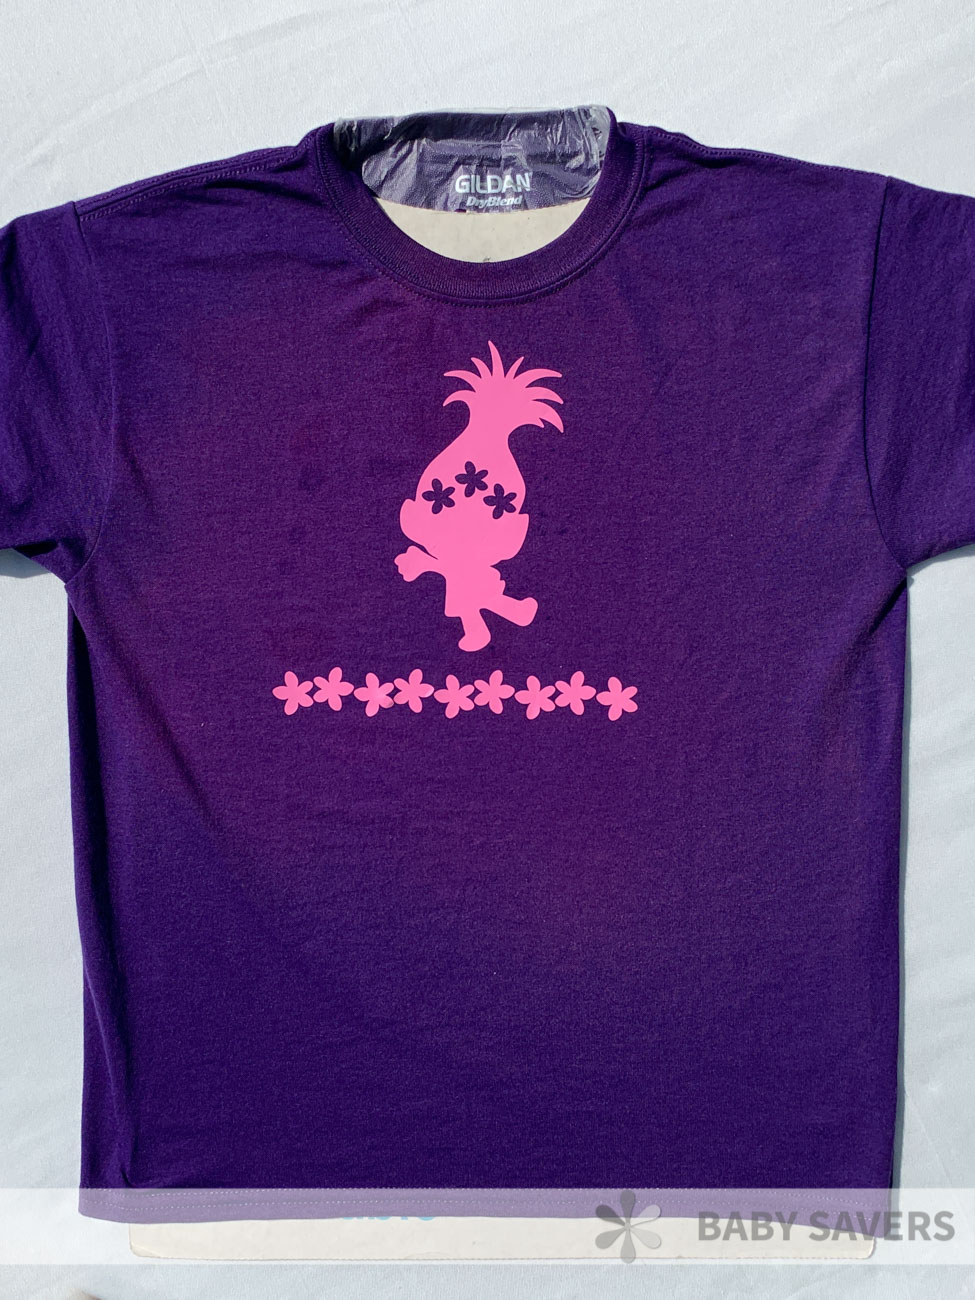 purple shirt with pink trolls sticker on there and reverse dye around the stickers